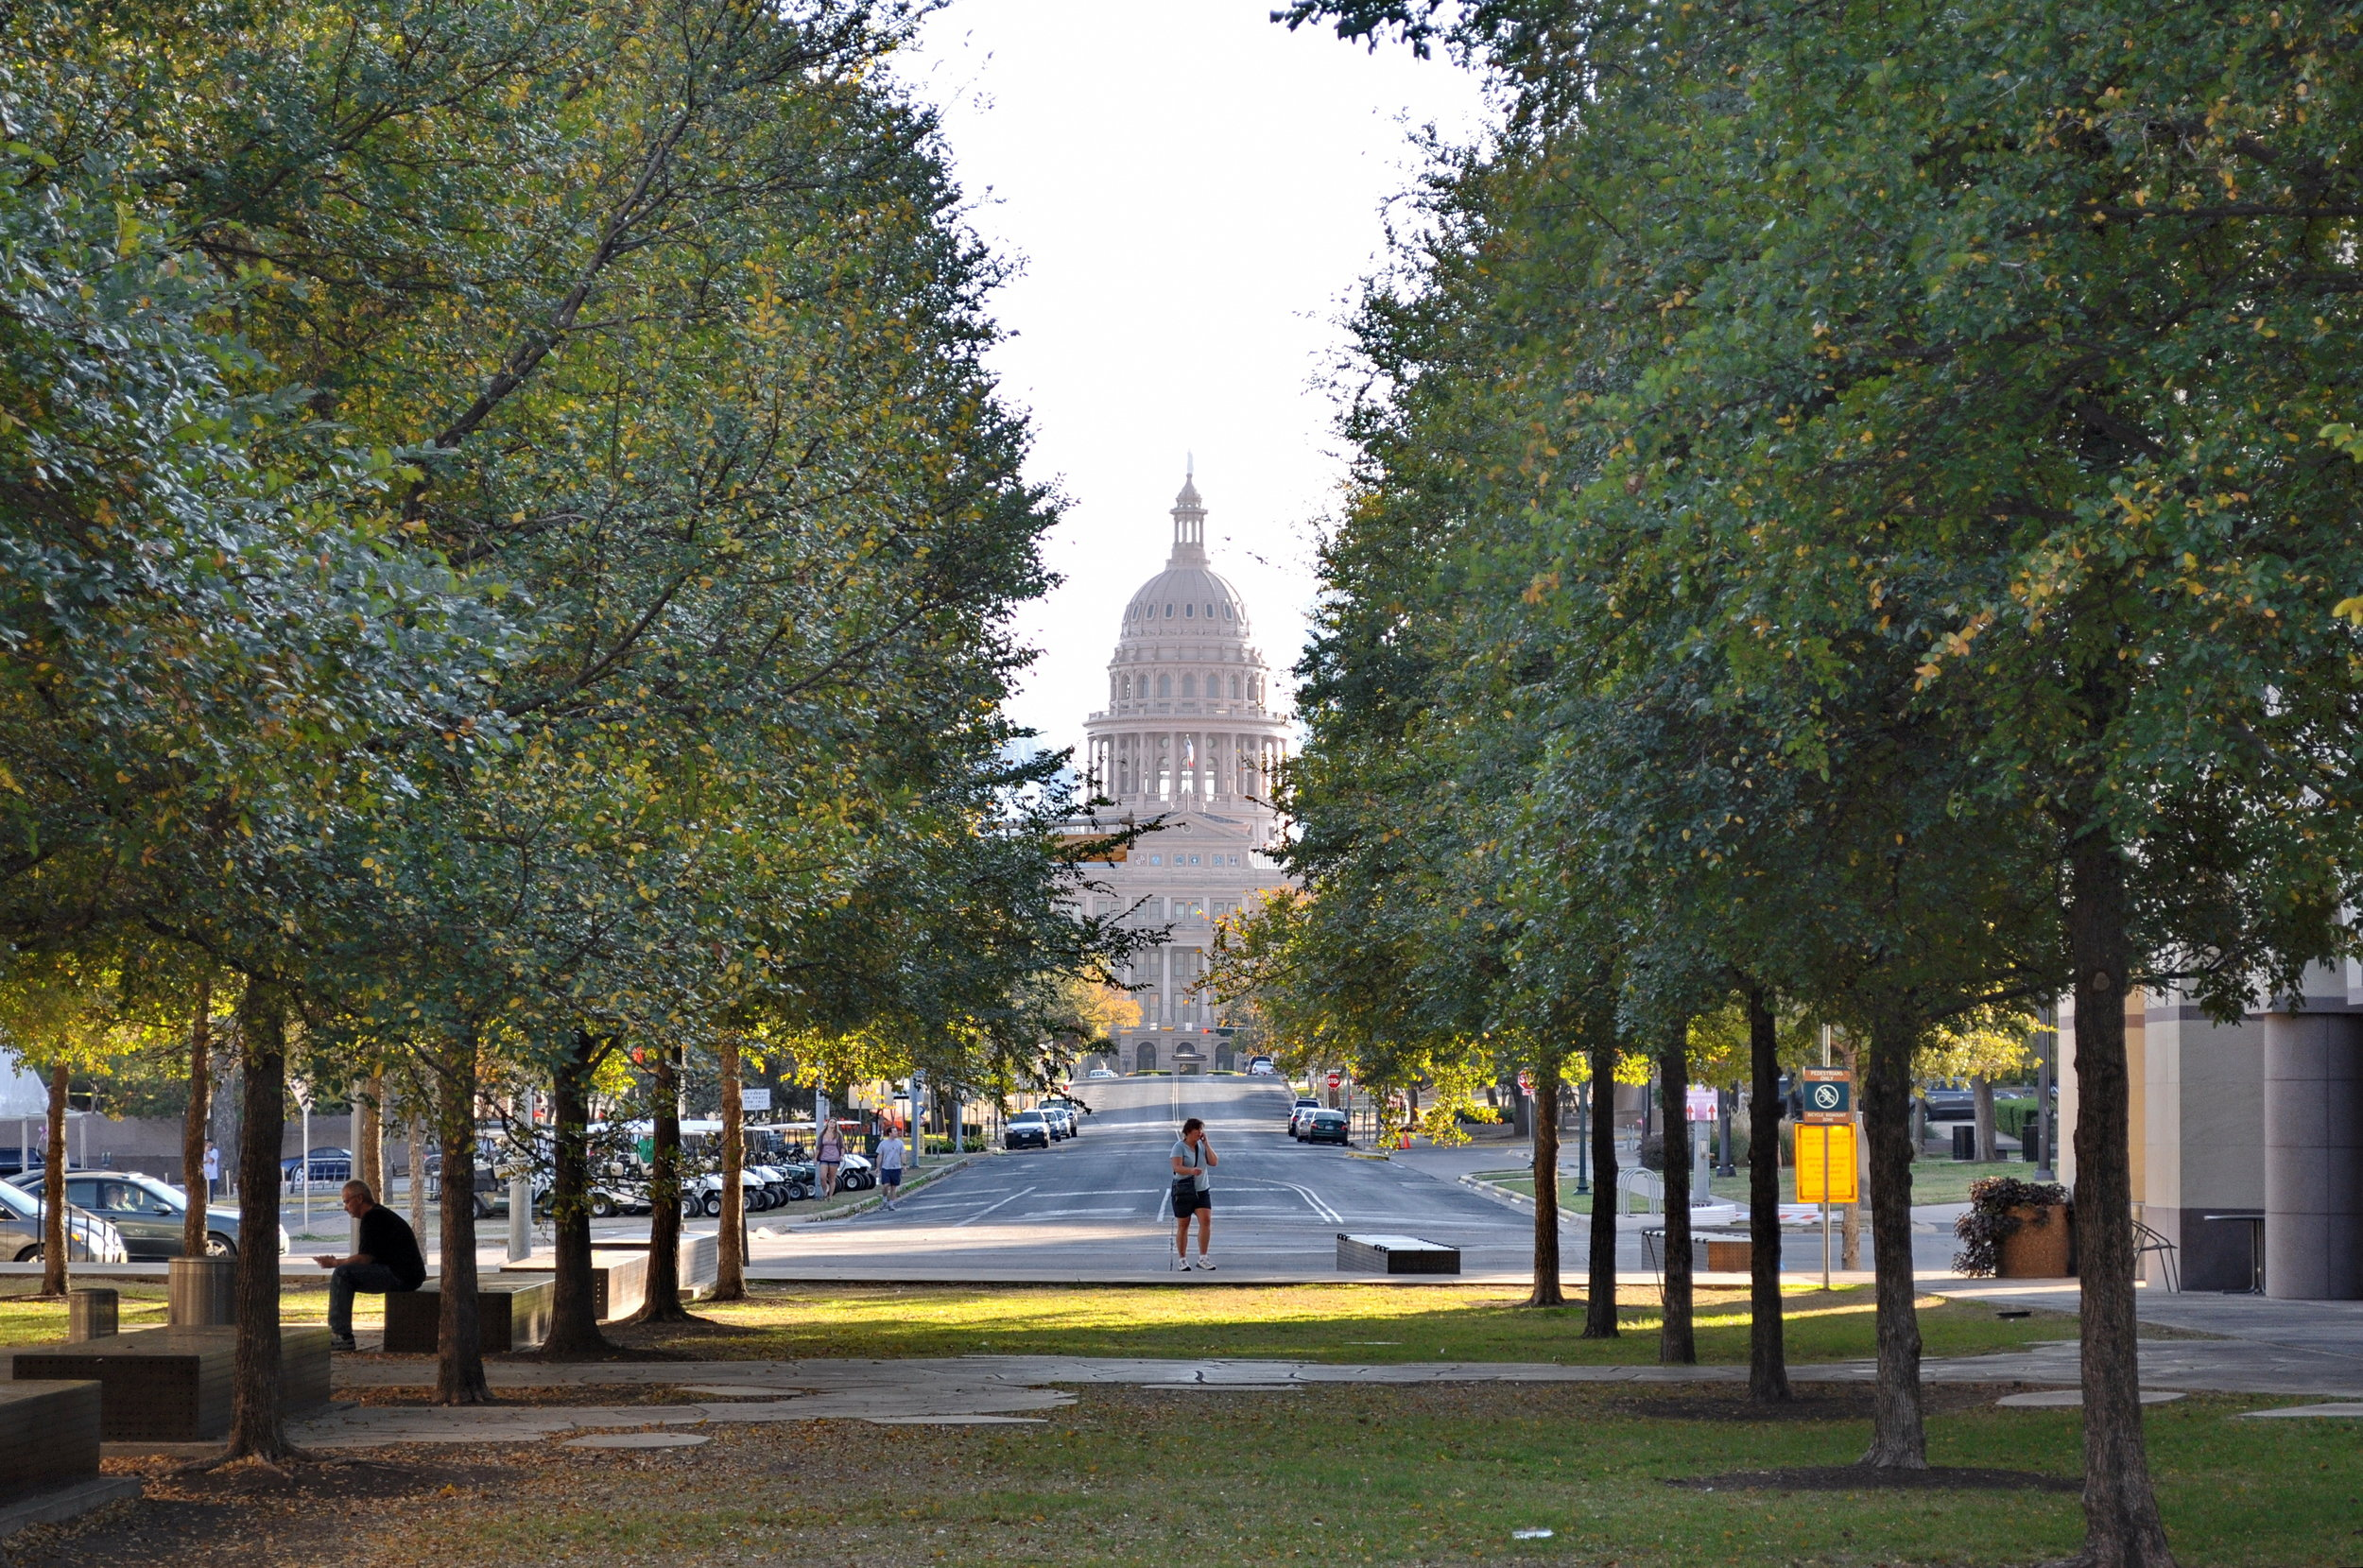 View of State Capitol Framed by Cedar Elm Trees